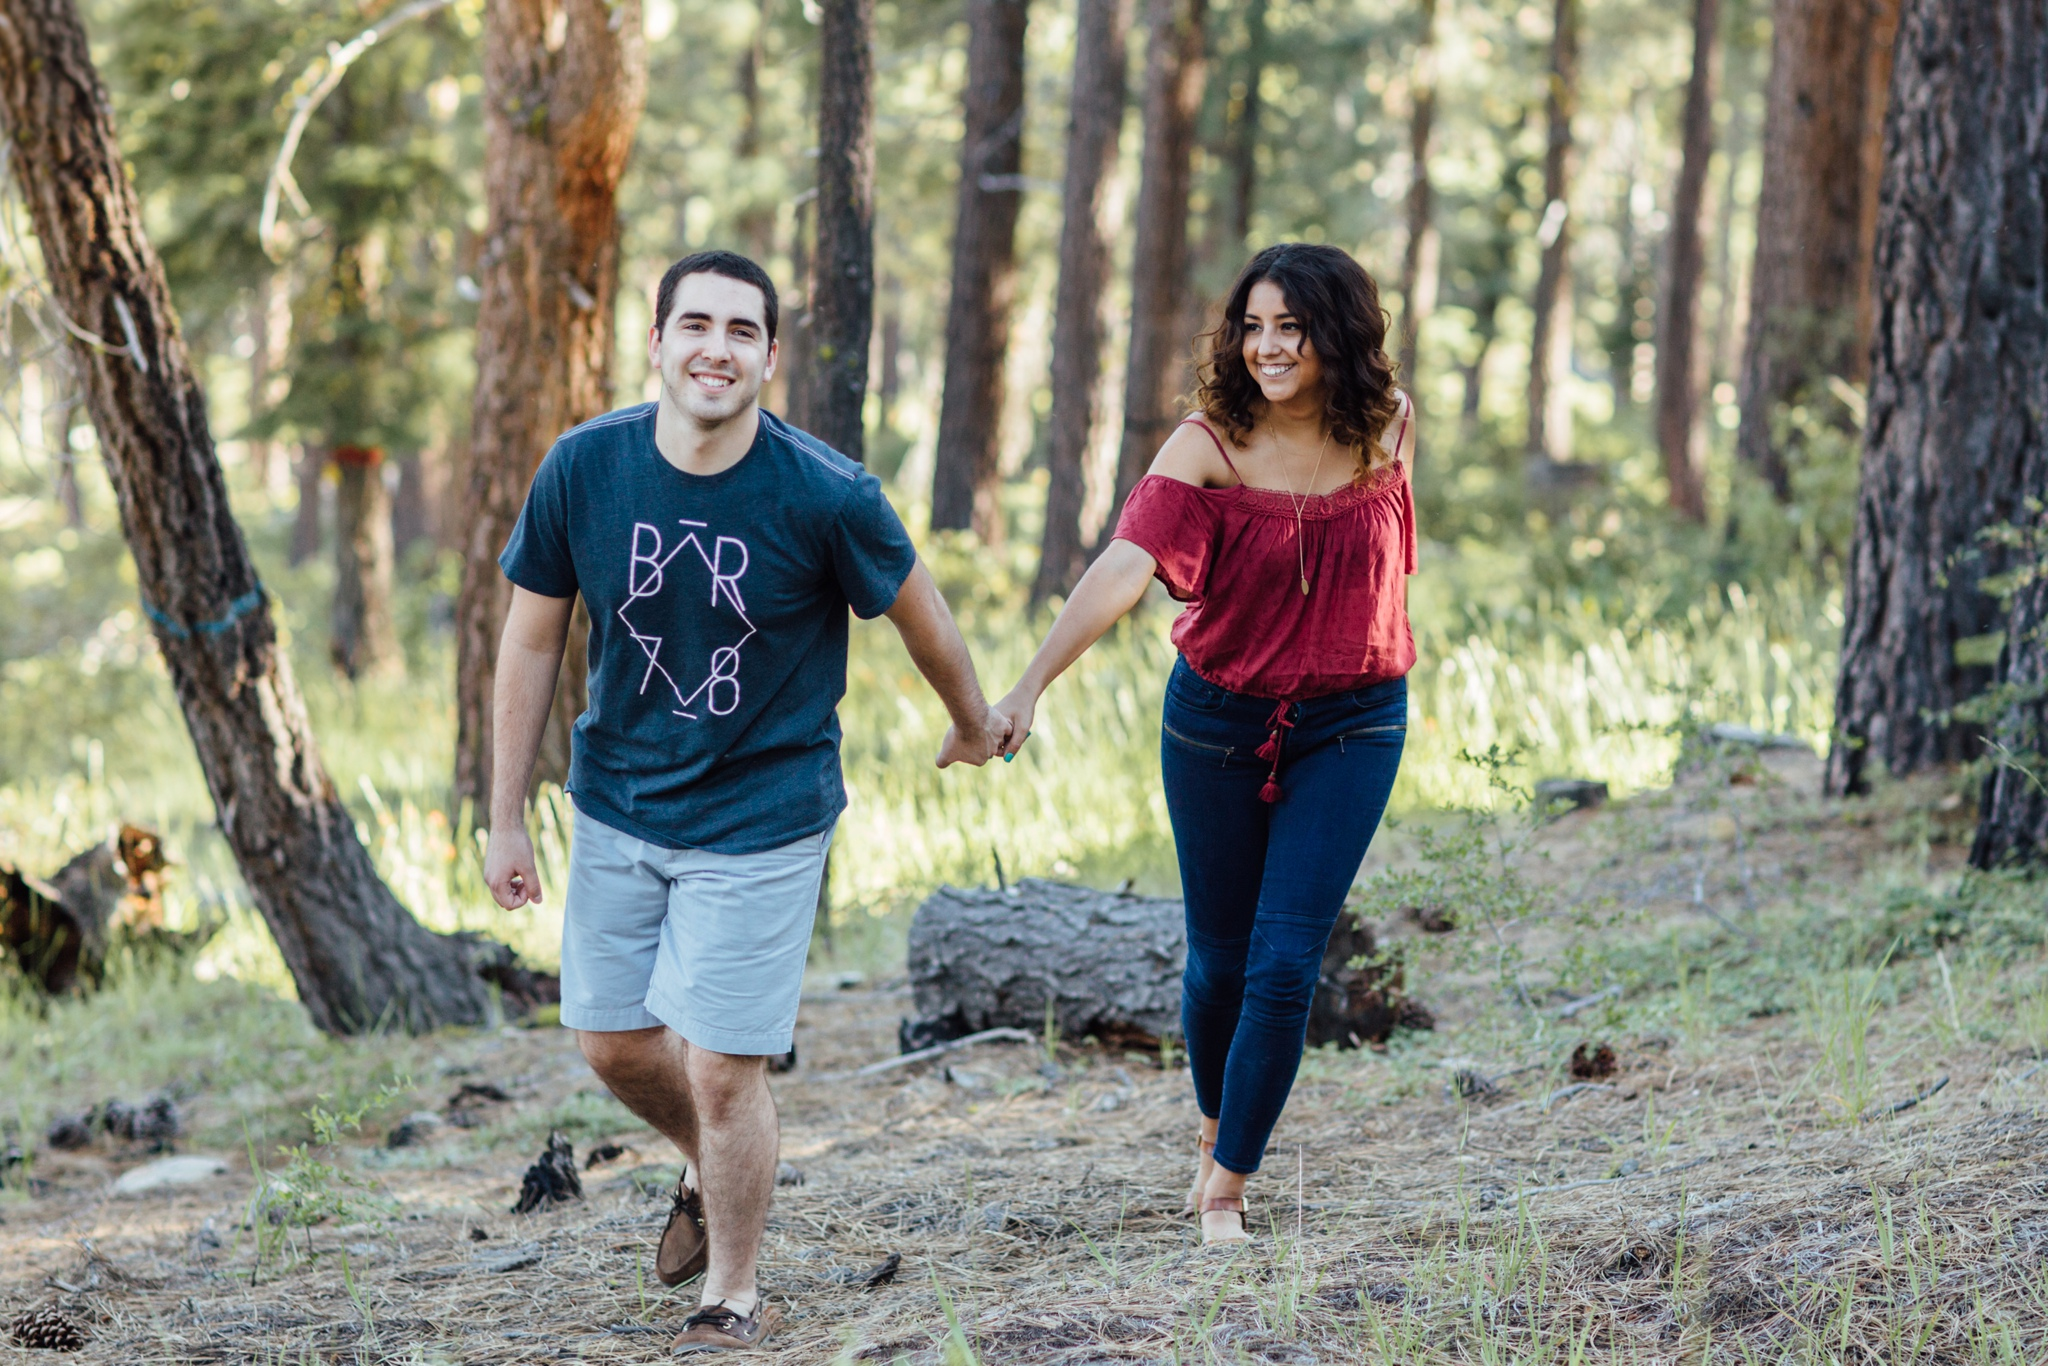 thedelauras_ostaraphotography_laketahoeengagement_laketahoeweddingphotograph_laketahoe_photographer_006